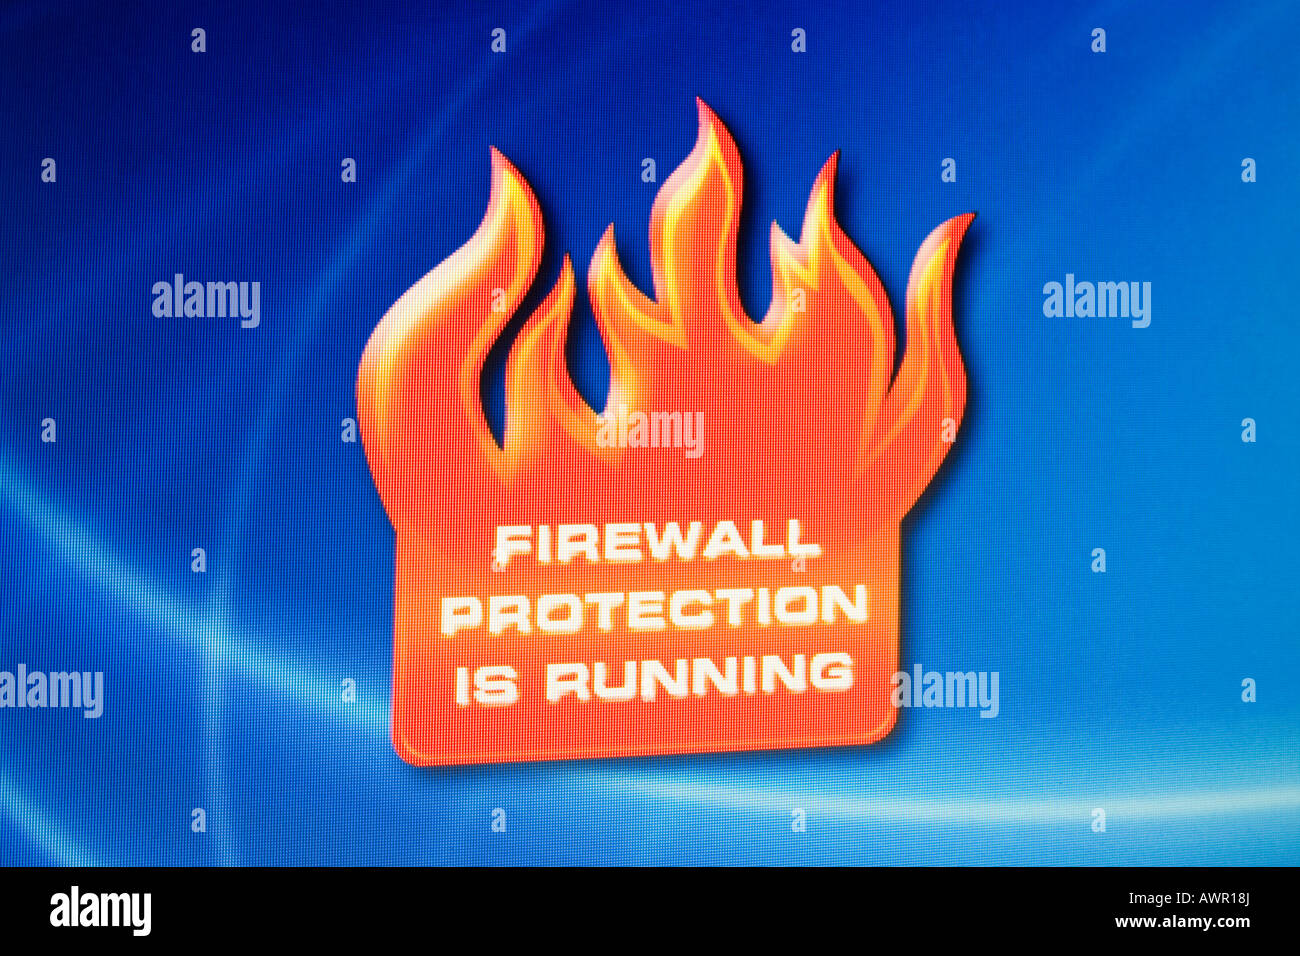 Screenshot, Computer Warning, Firewall protection is running - Stock Image